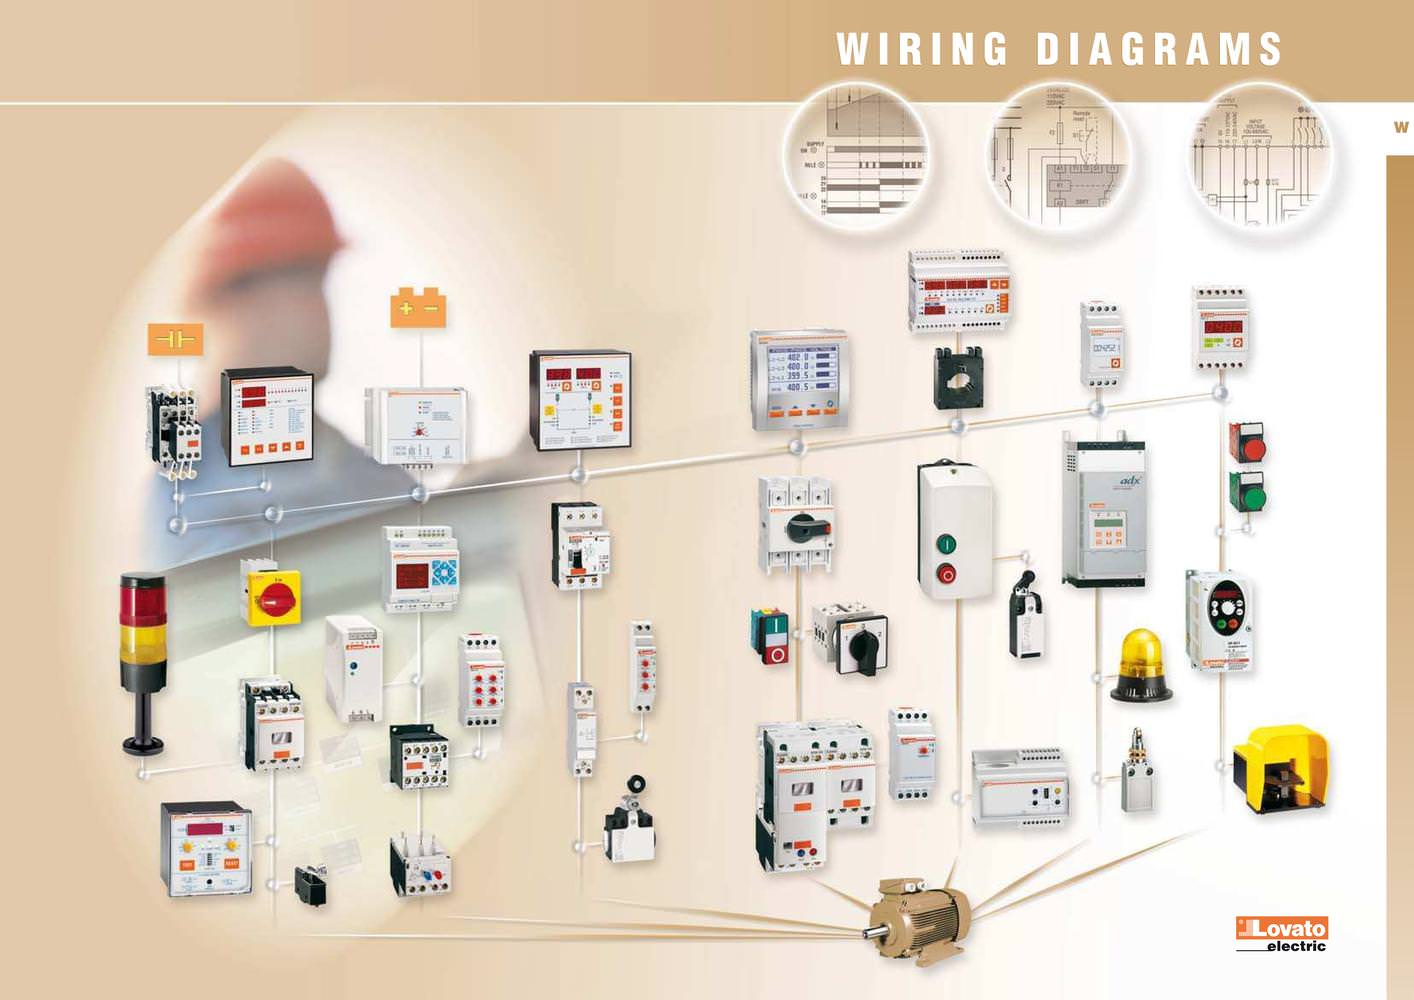 Wiring Diagrams Lovato Electric Pdf Catalogs Technical Control Diagram 1 39 Pages